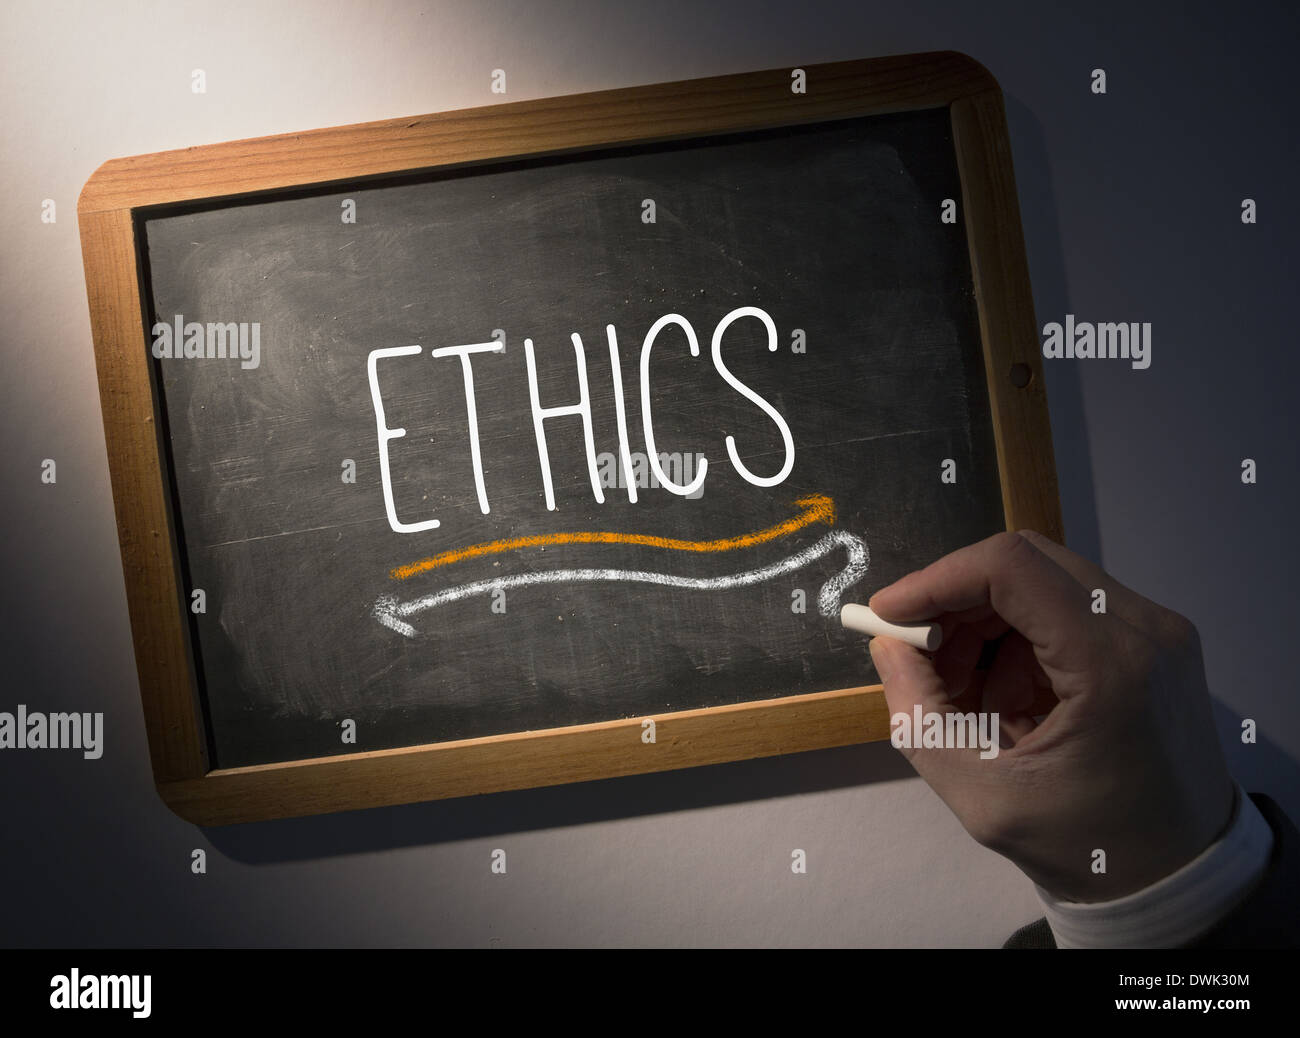 Hand writing Ethics on chalkboard Stock Photo